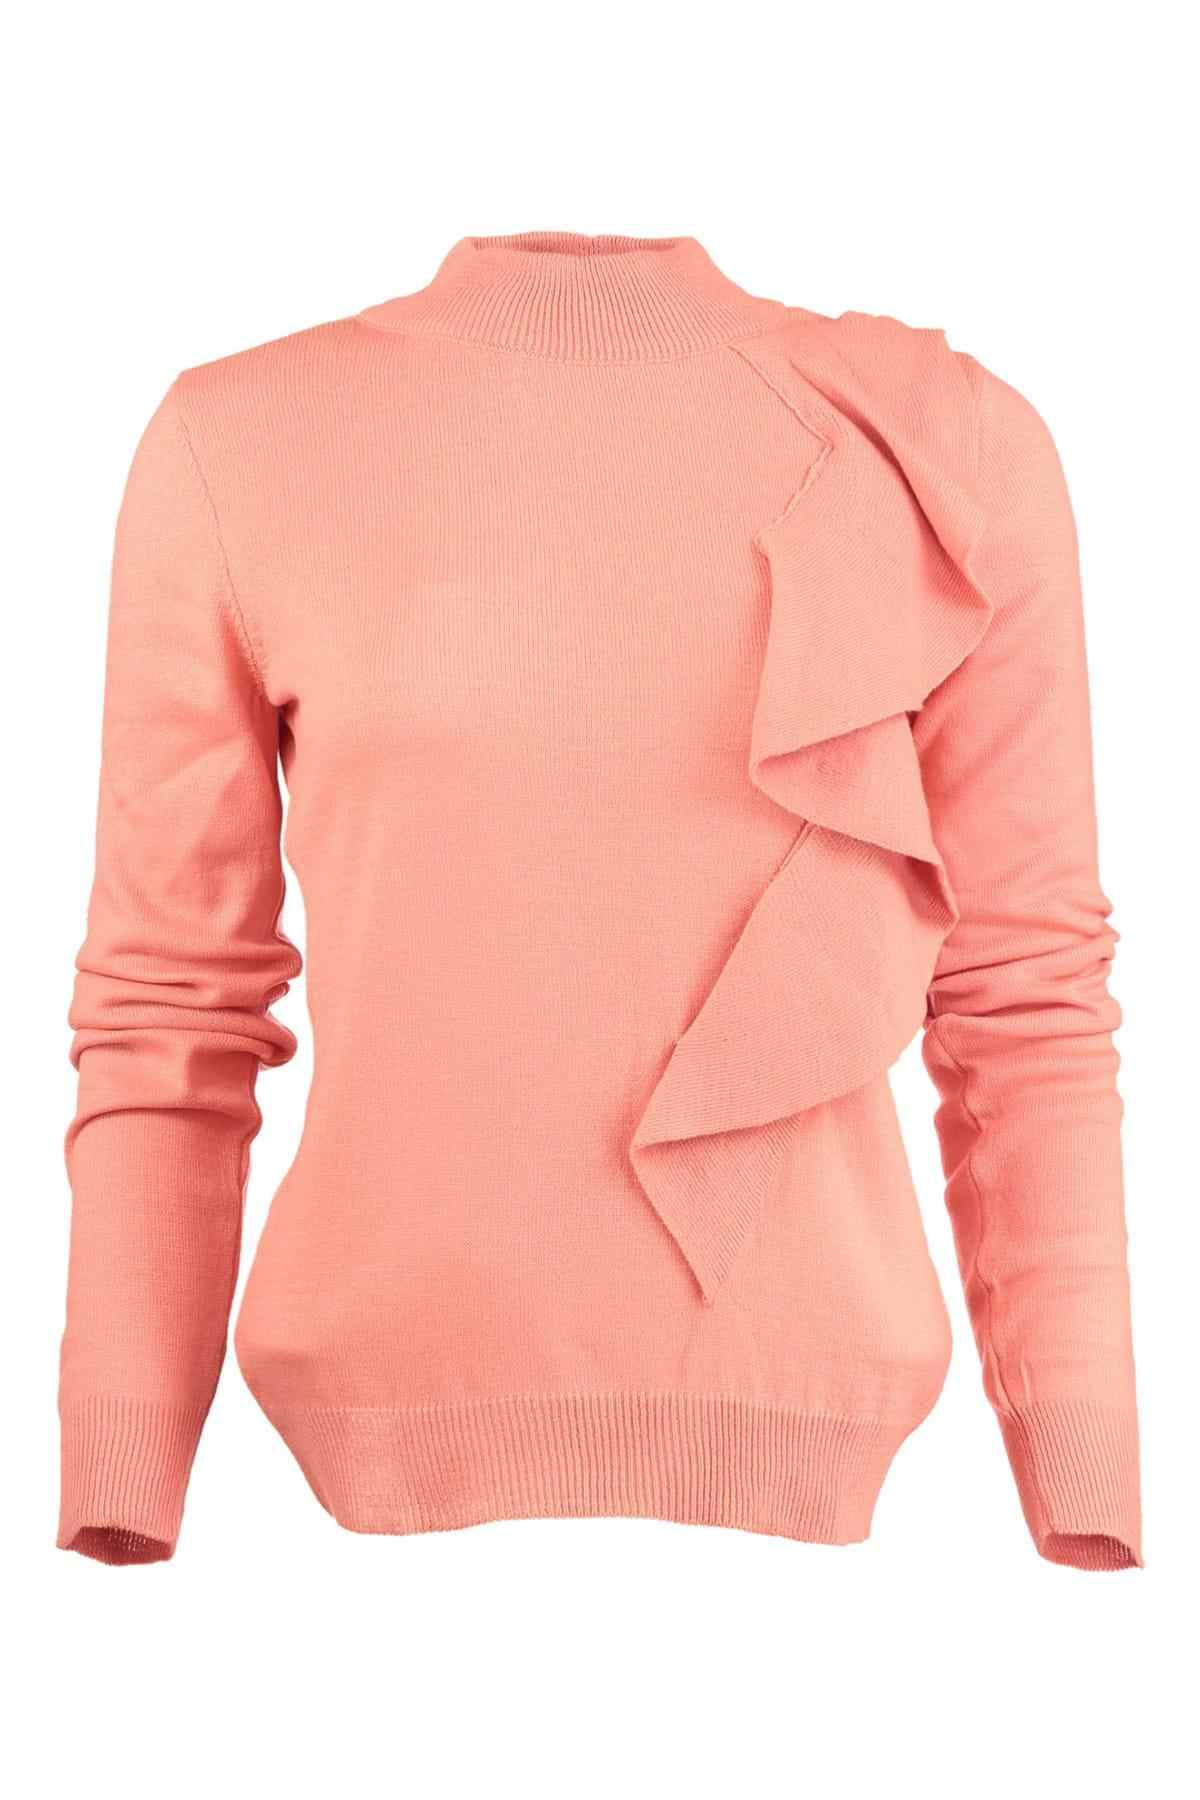 Trendyol WOMEN-Peach Flounces Knitwear Sweater TWOAW20DU0017